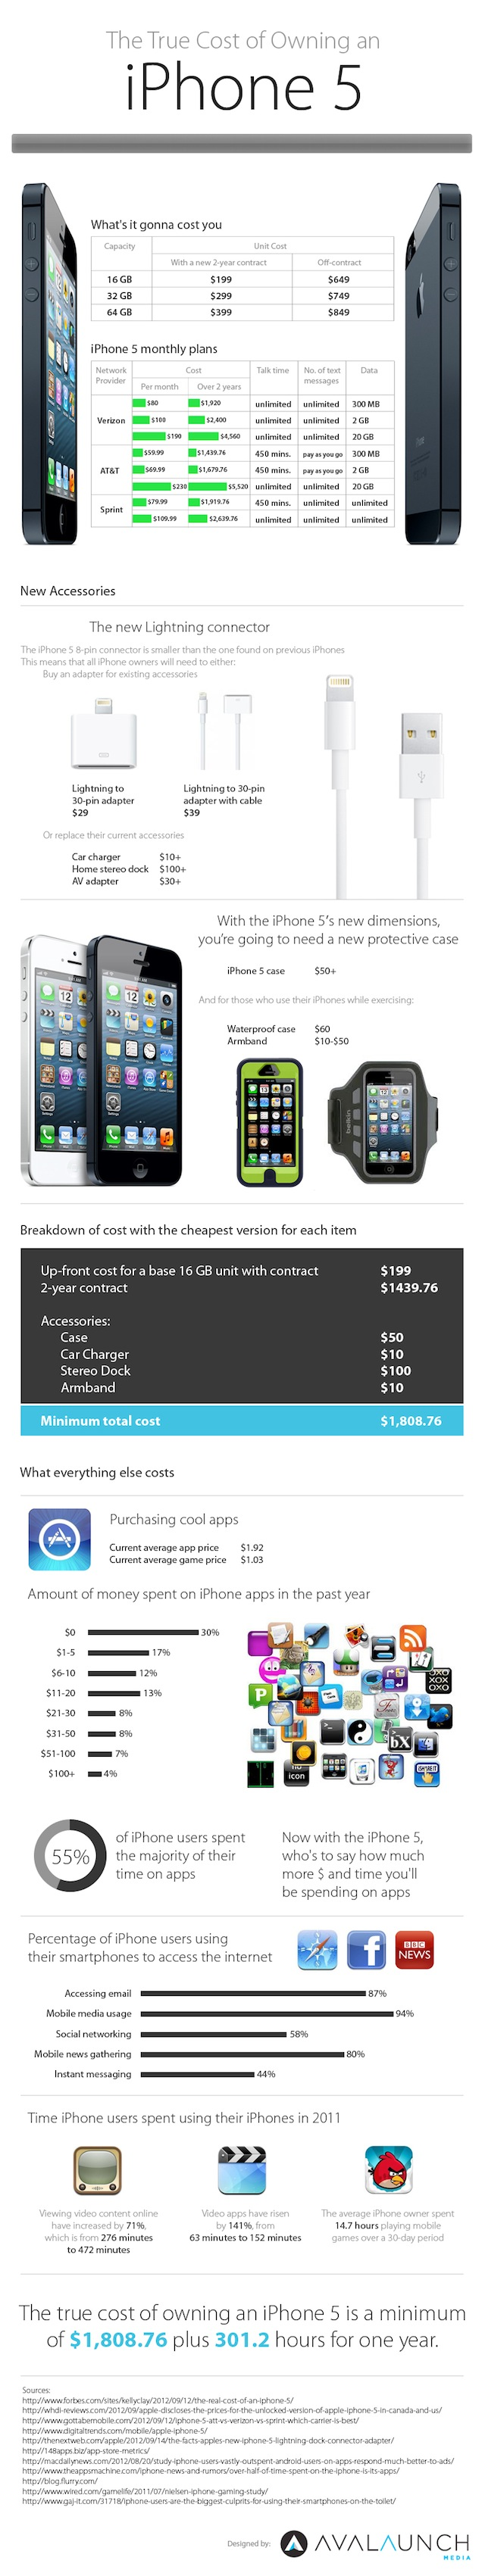 True cost of an iPhone 5